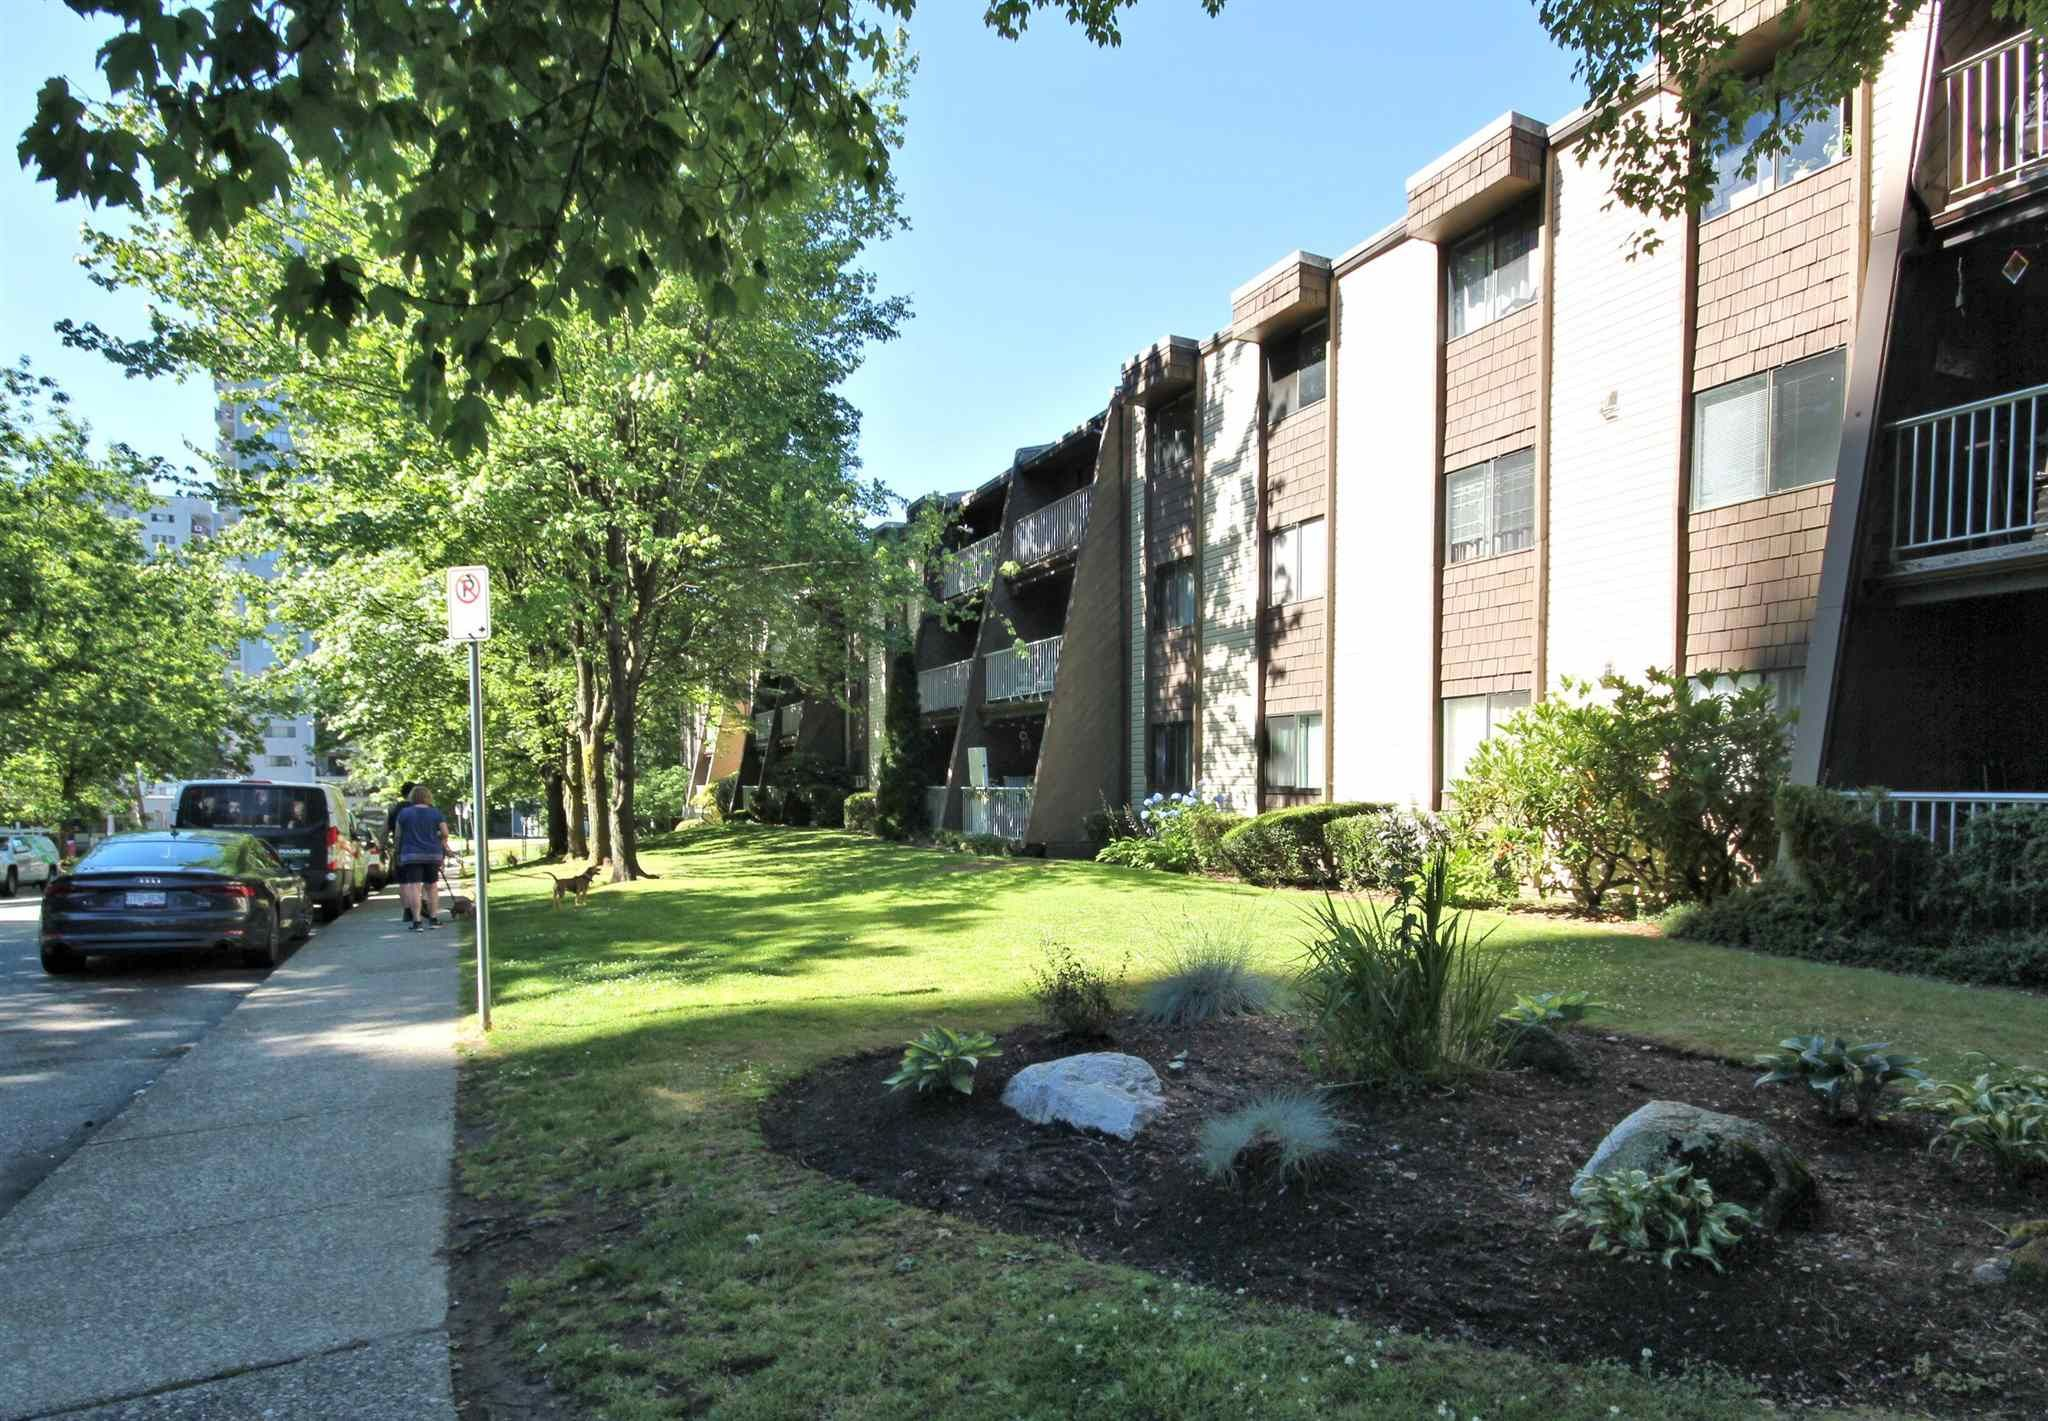 Main Photo: 107 3911 CARRIGAN Court in Burnaby: Government Road Condo for sale (Burnaby North)  : MLS®# R2597121